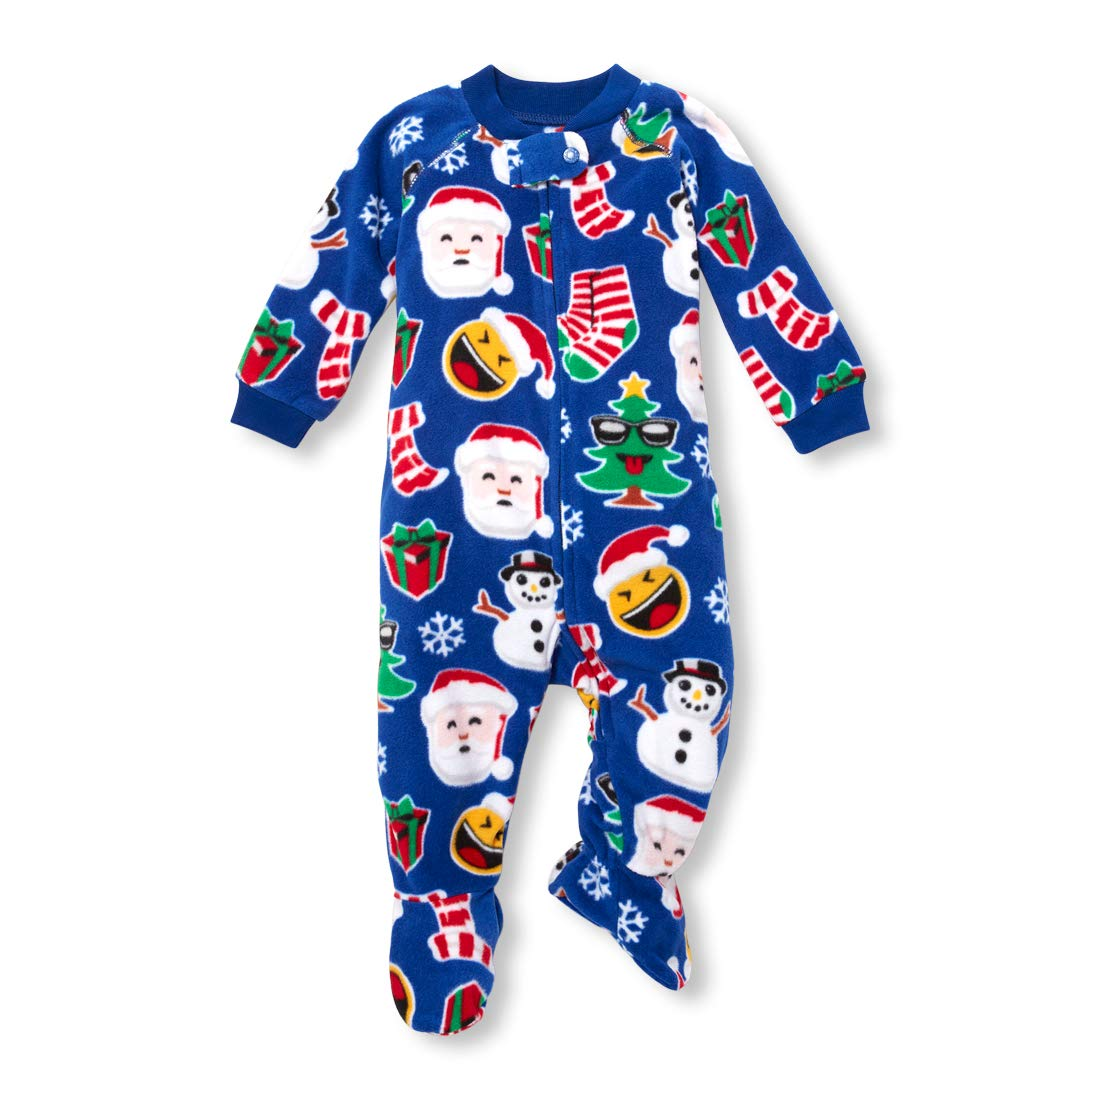 The Children's Place Baby Christmas Blanket Sleeper The Children' s Place